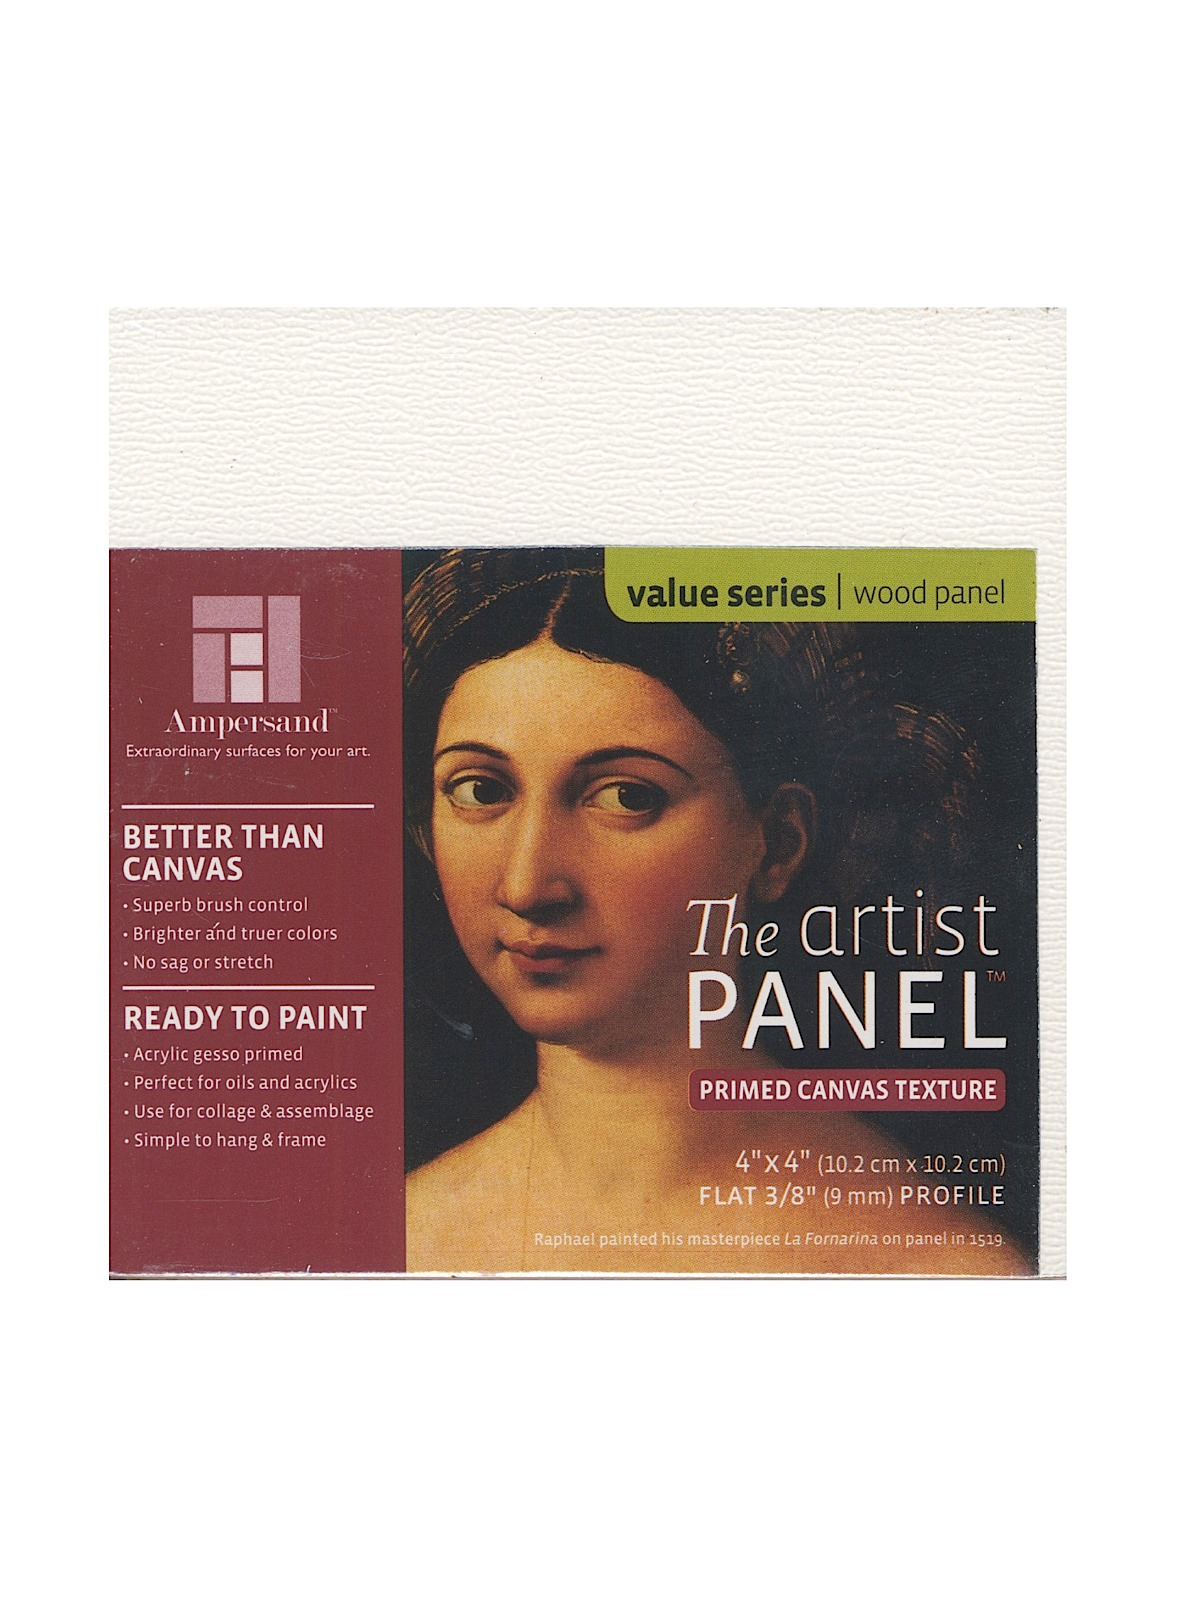 The Artist Panel Canvas Texture Flat Profile 4 in. x 4 in. 3 8 in.